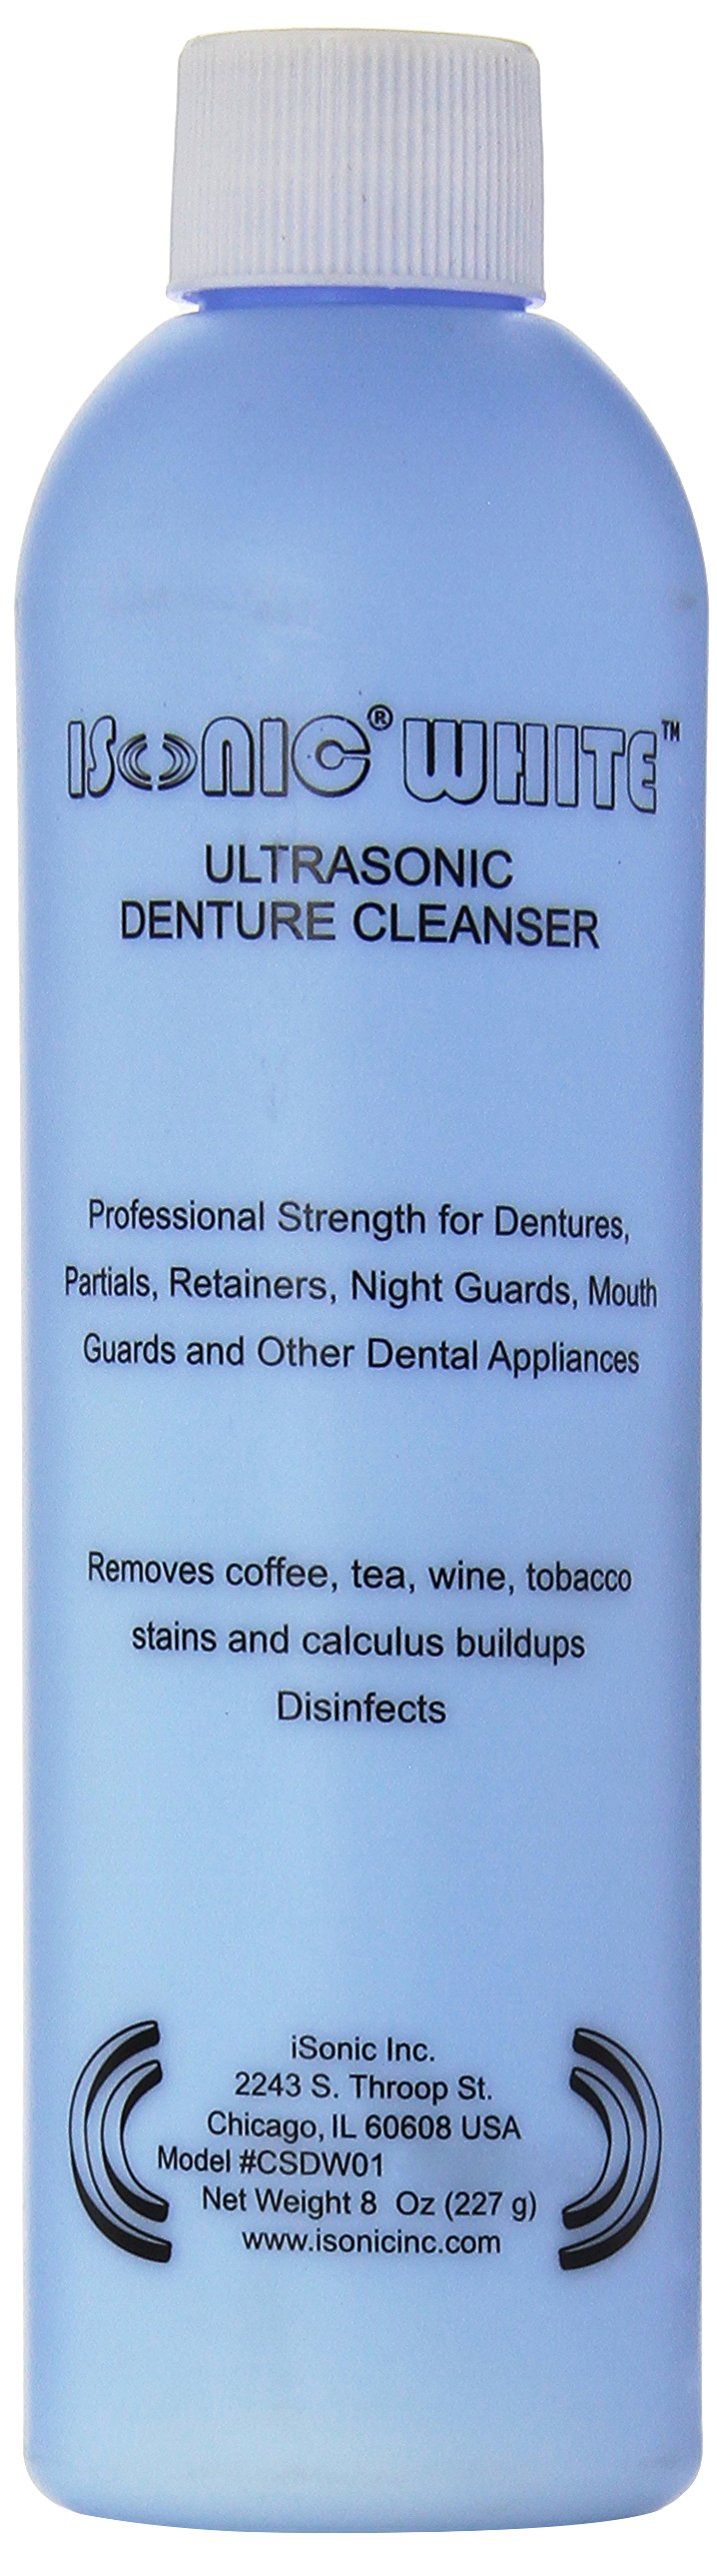 iSonic CSDW01 Ultrasonic Cleaning Powder for Denture and All Other Dental Appliances, 8oz./227 g Professional Strength, White